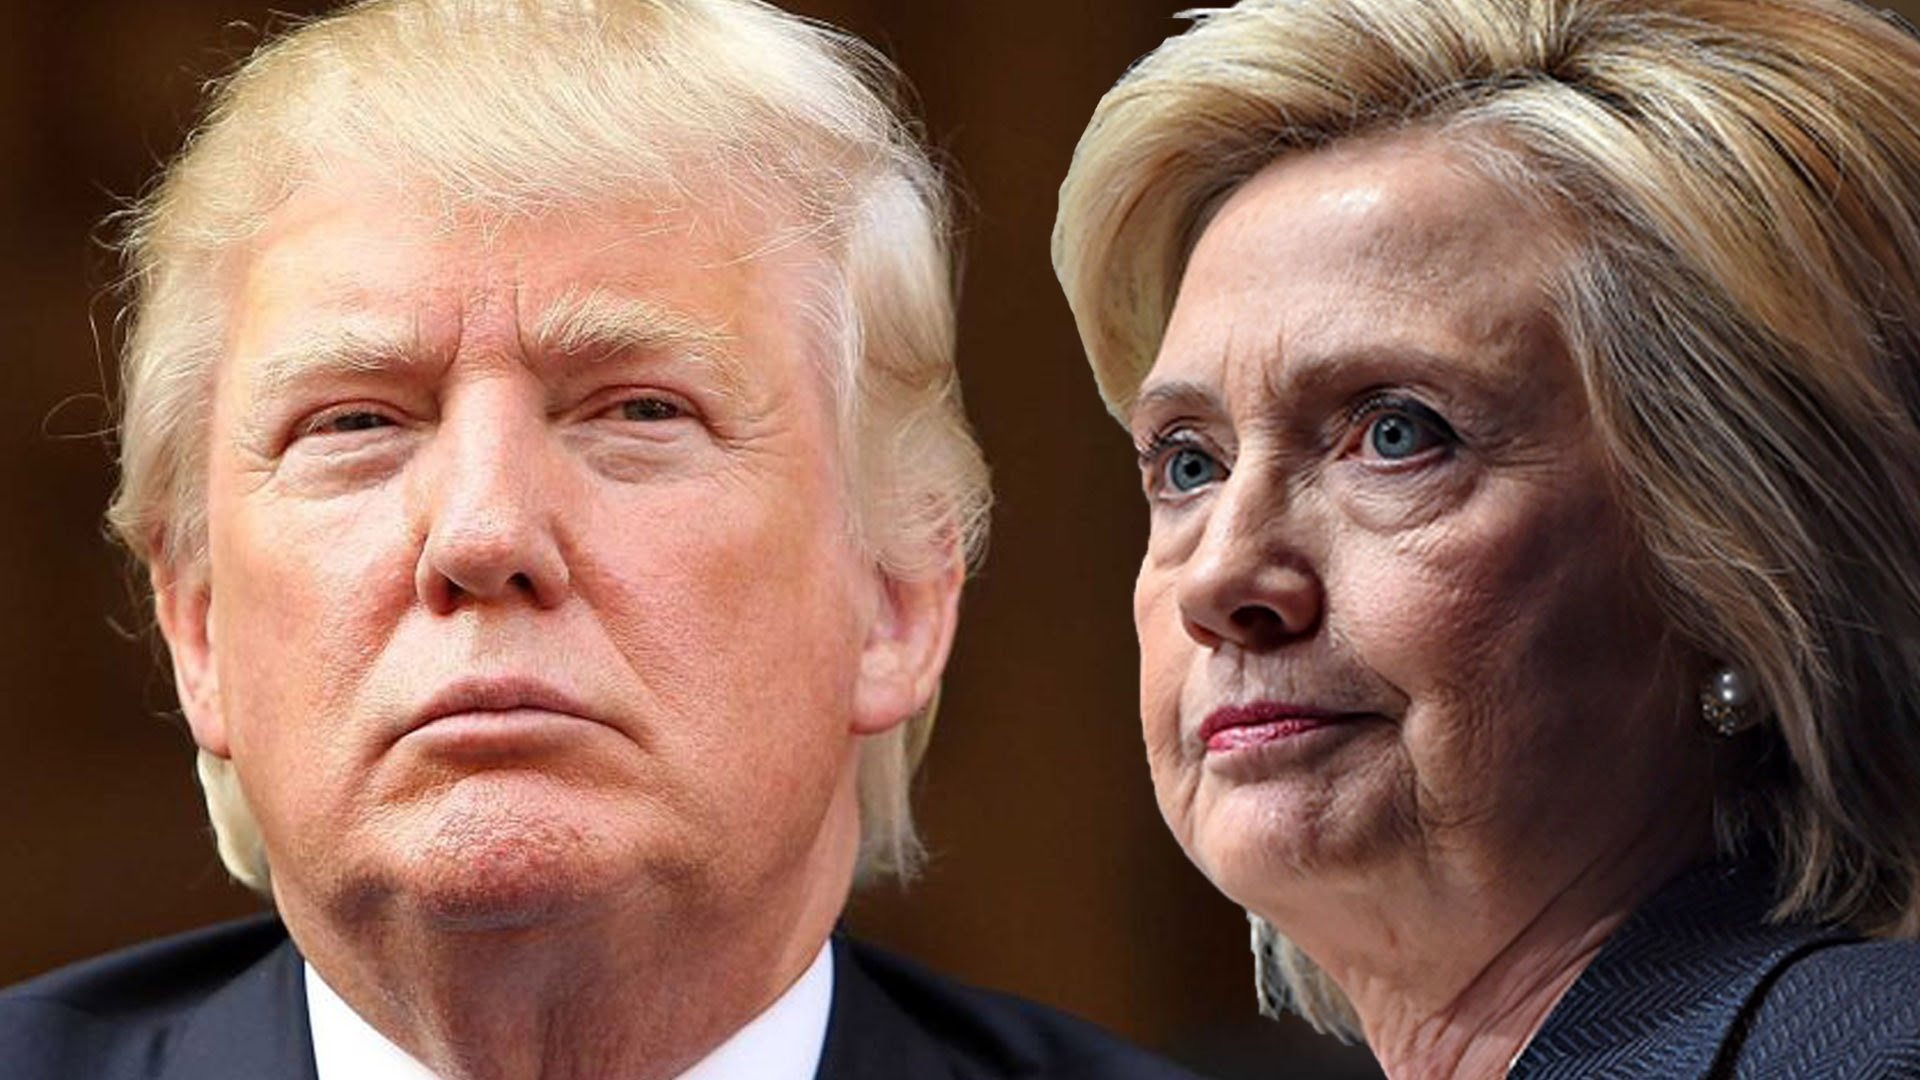 Did FBI meddle in the U.S. election?